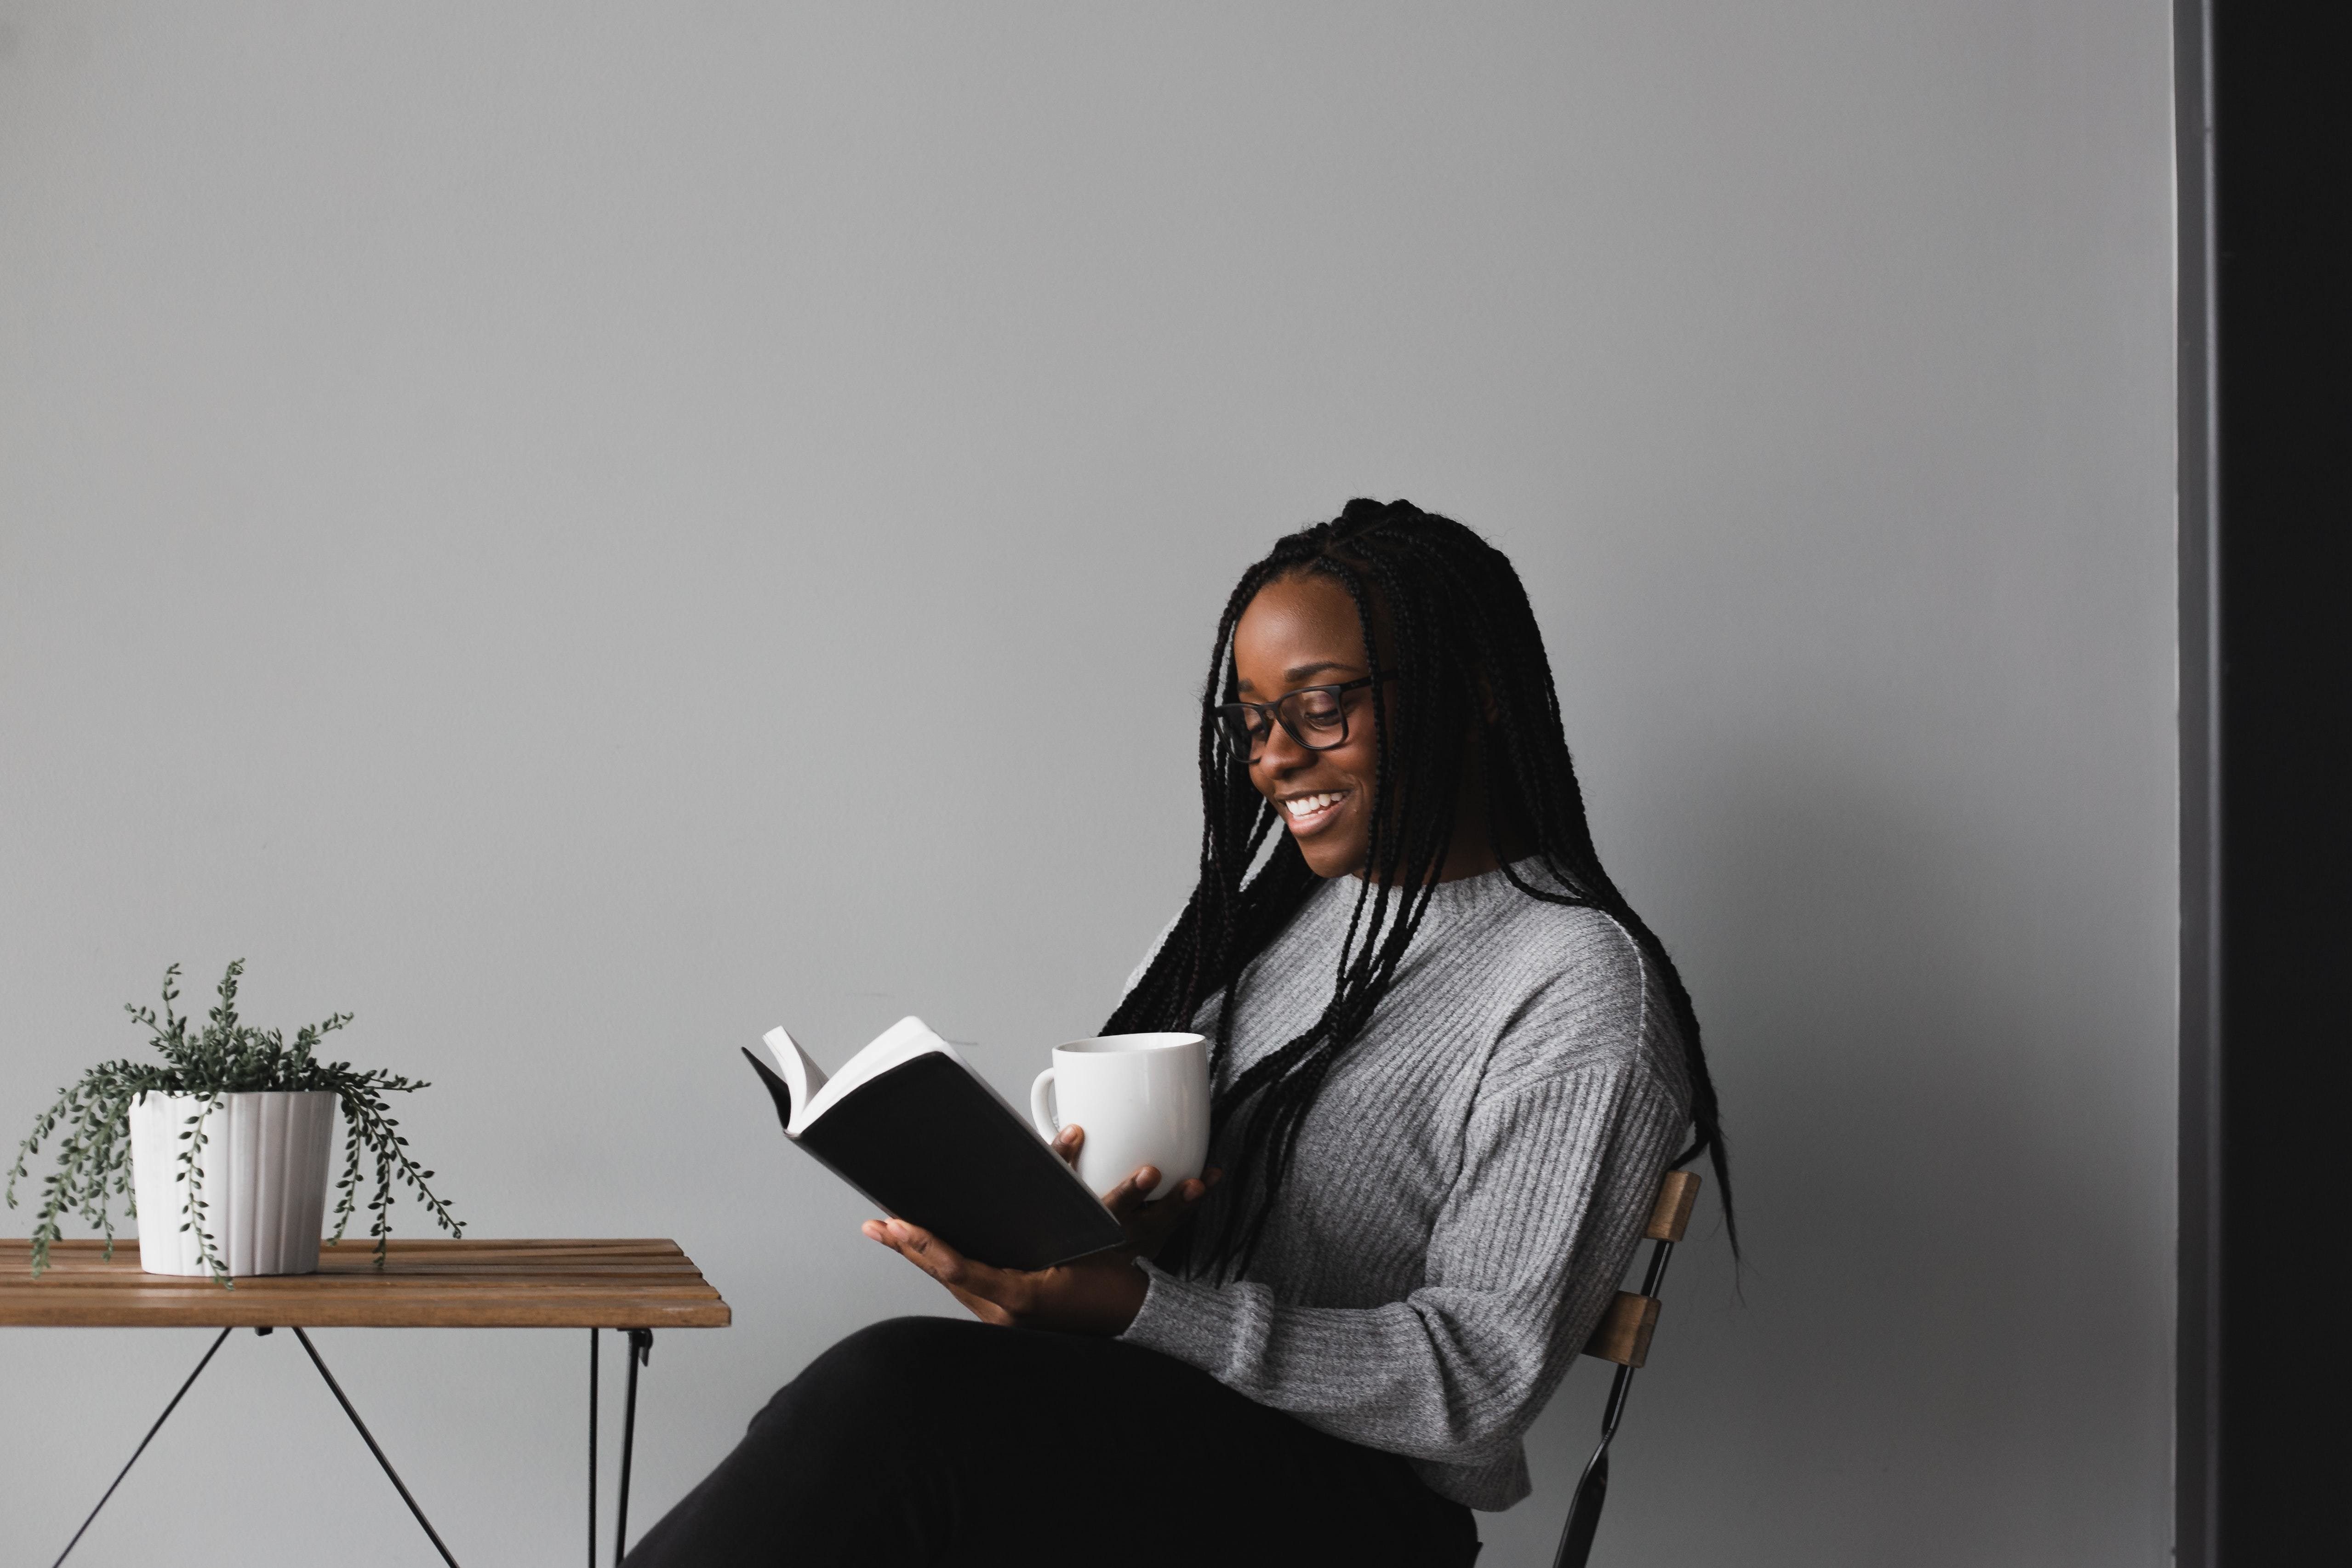 this woman here is reading a book. Expert Adam Grant has just released a new list about the best leadership books for autumn